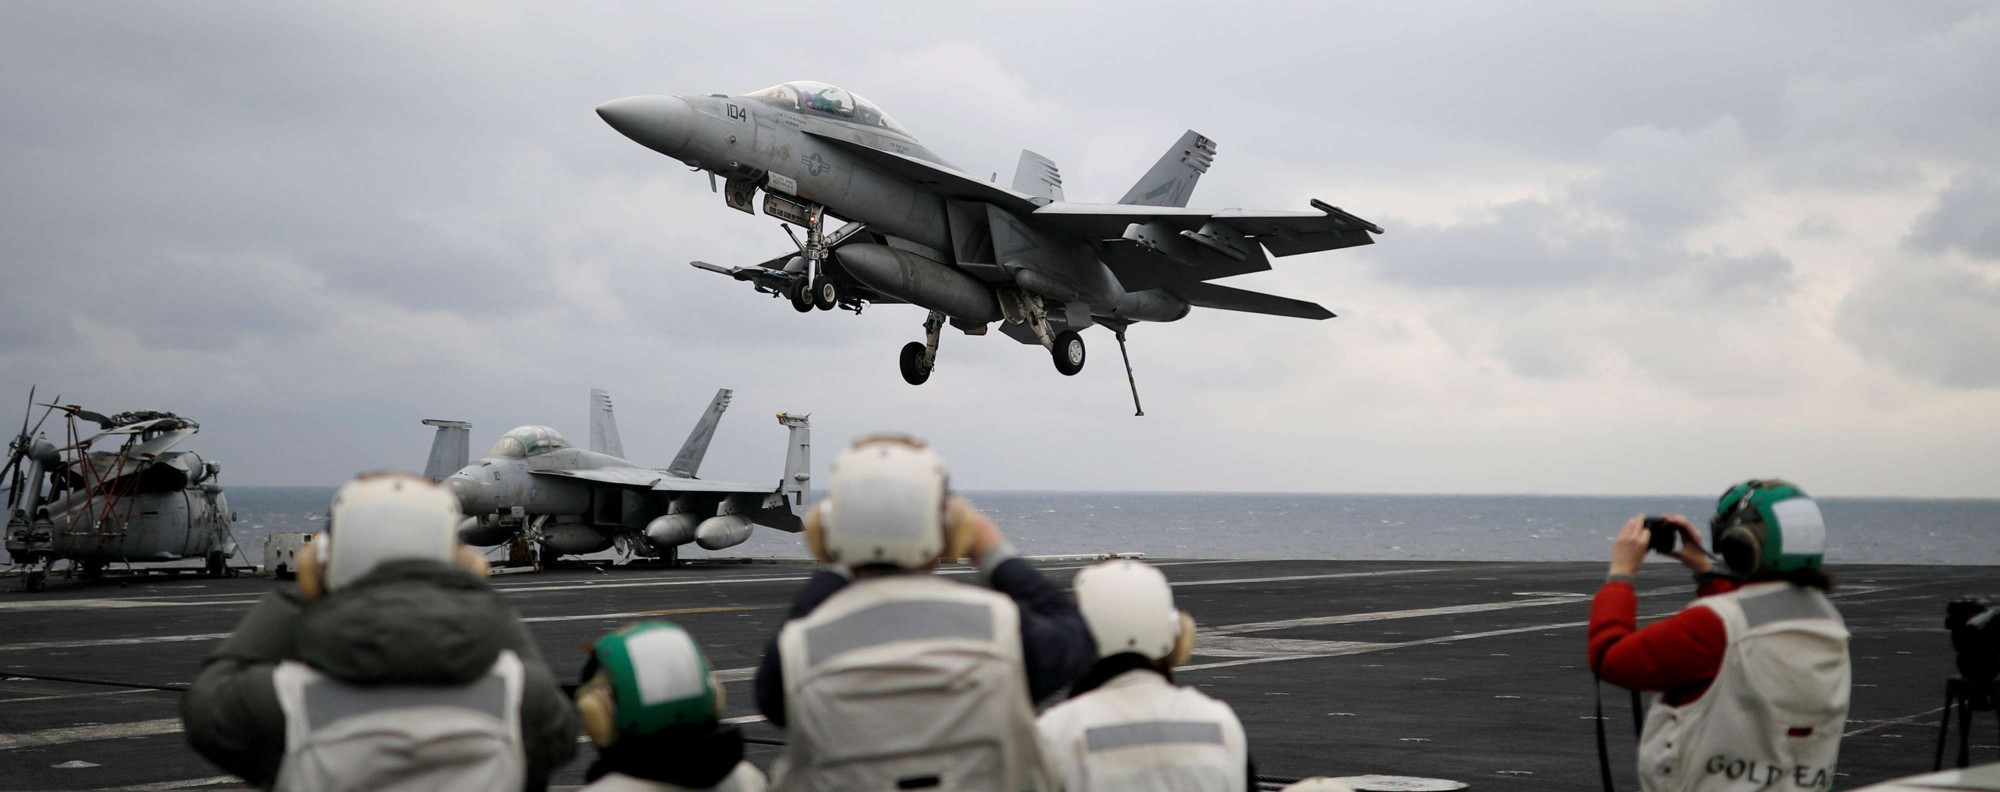 A UIS. F18 fighter jet. Photo: Reuters